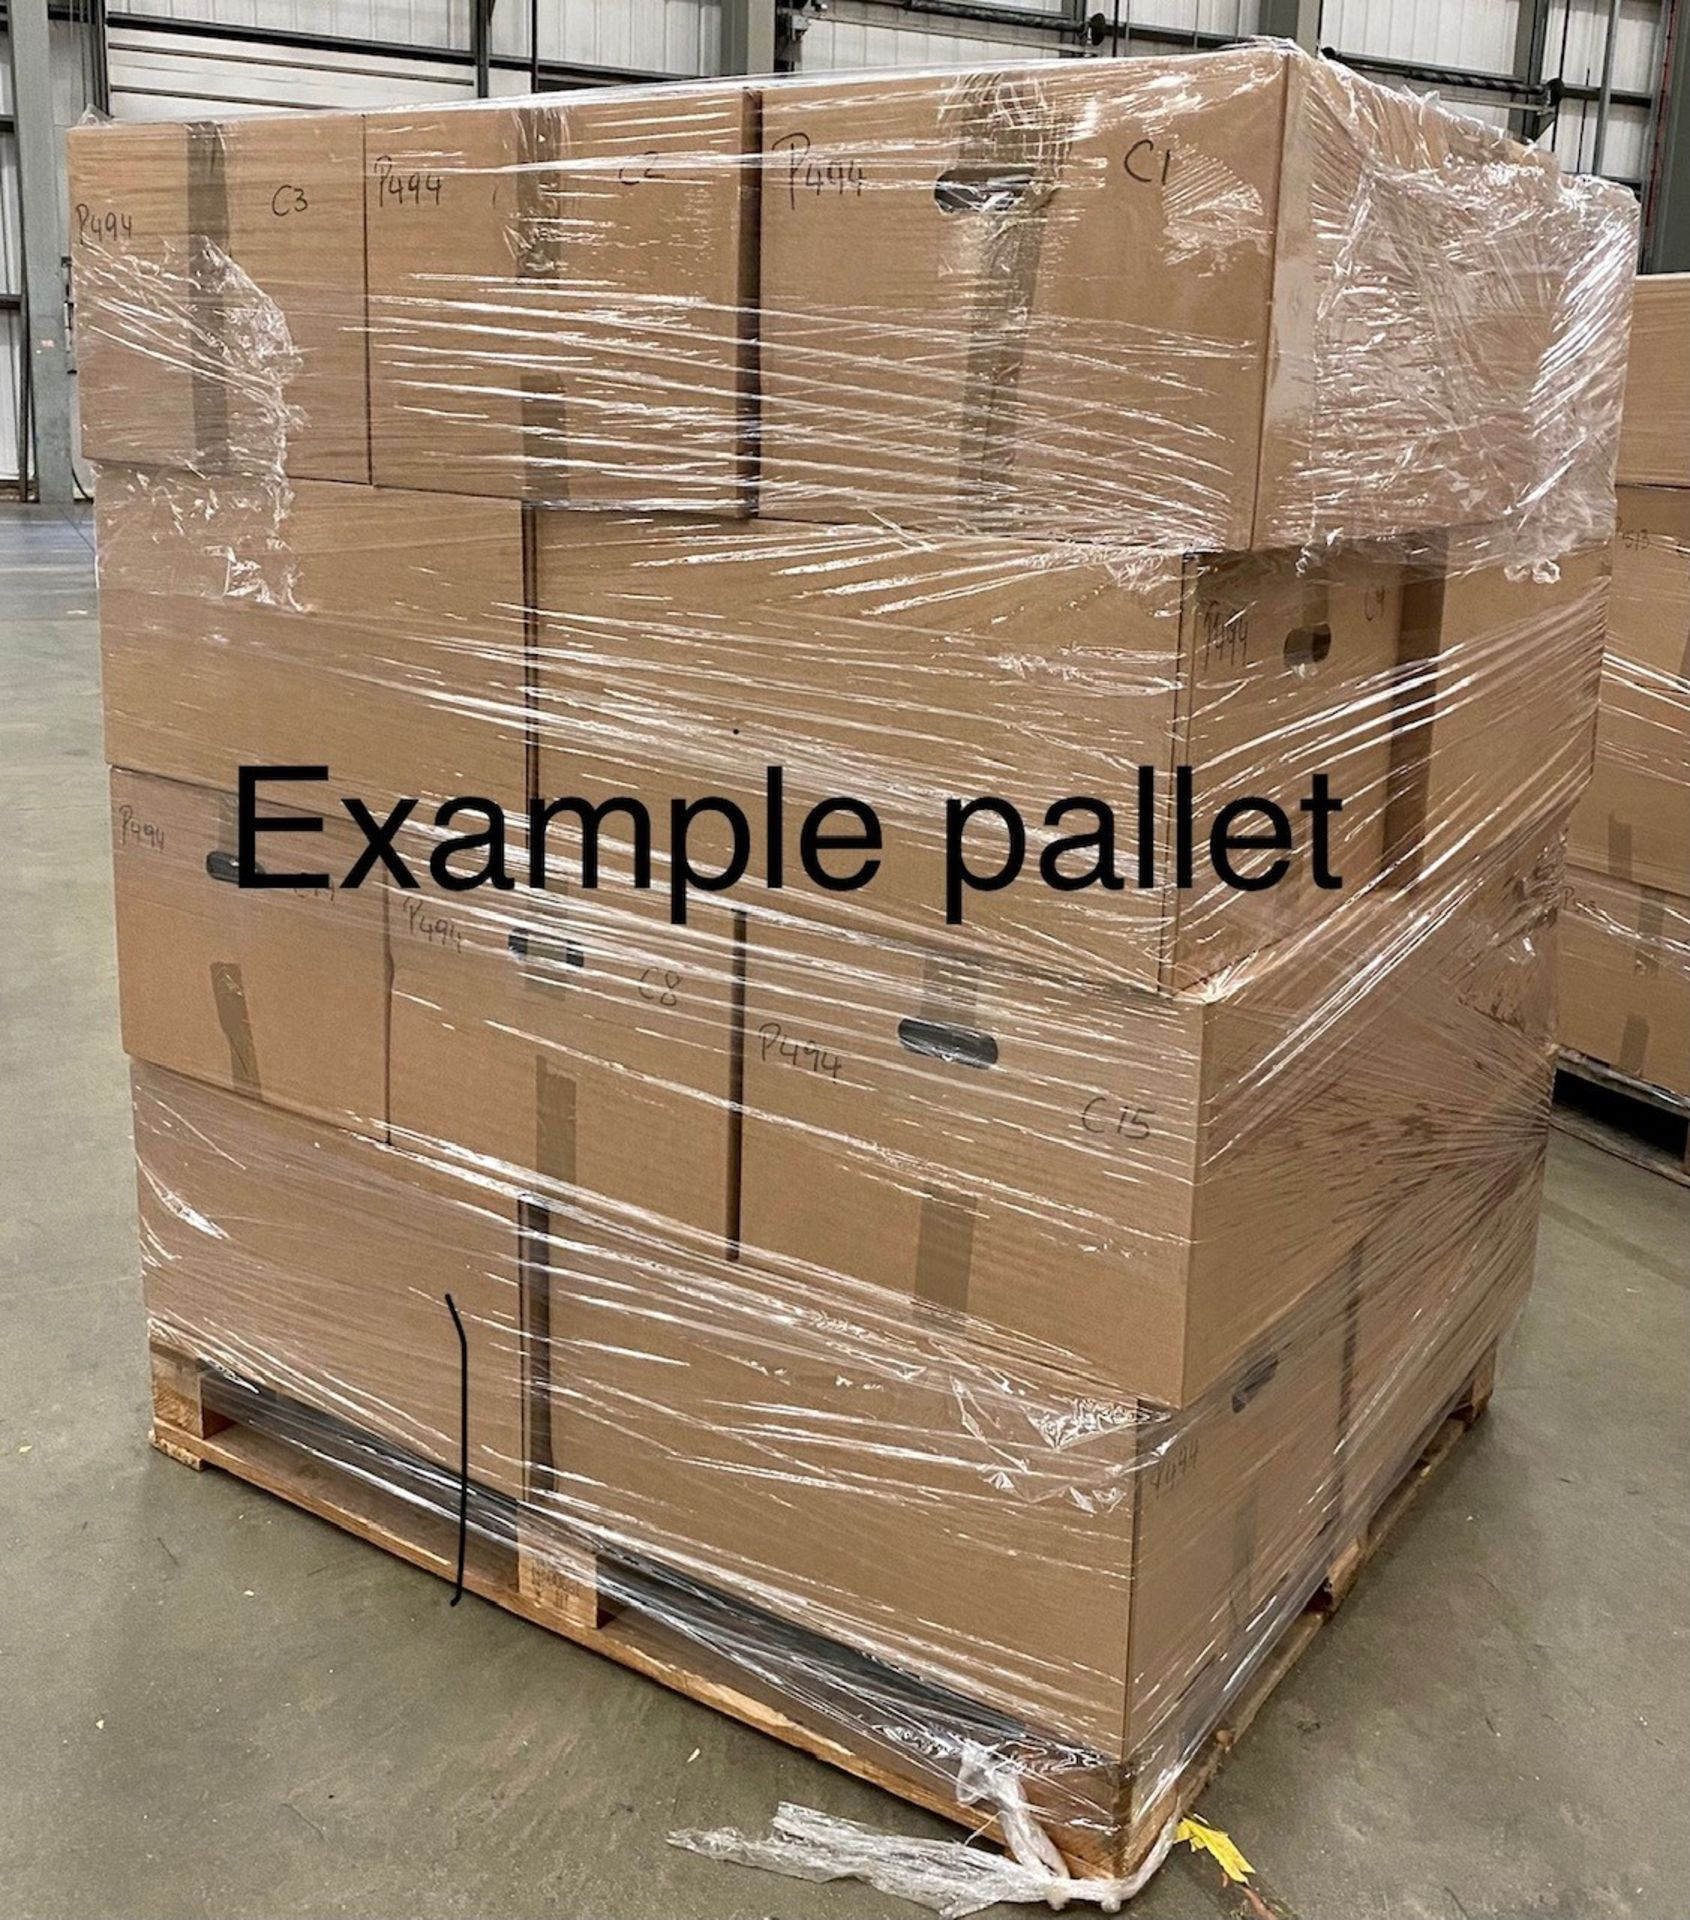 1 x mixed pallet = 205 items of Grade A M&S Womenswear Clothing. Total RRP £3575.00 - Image 6 of 7